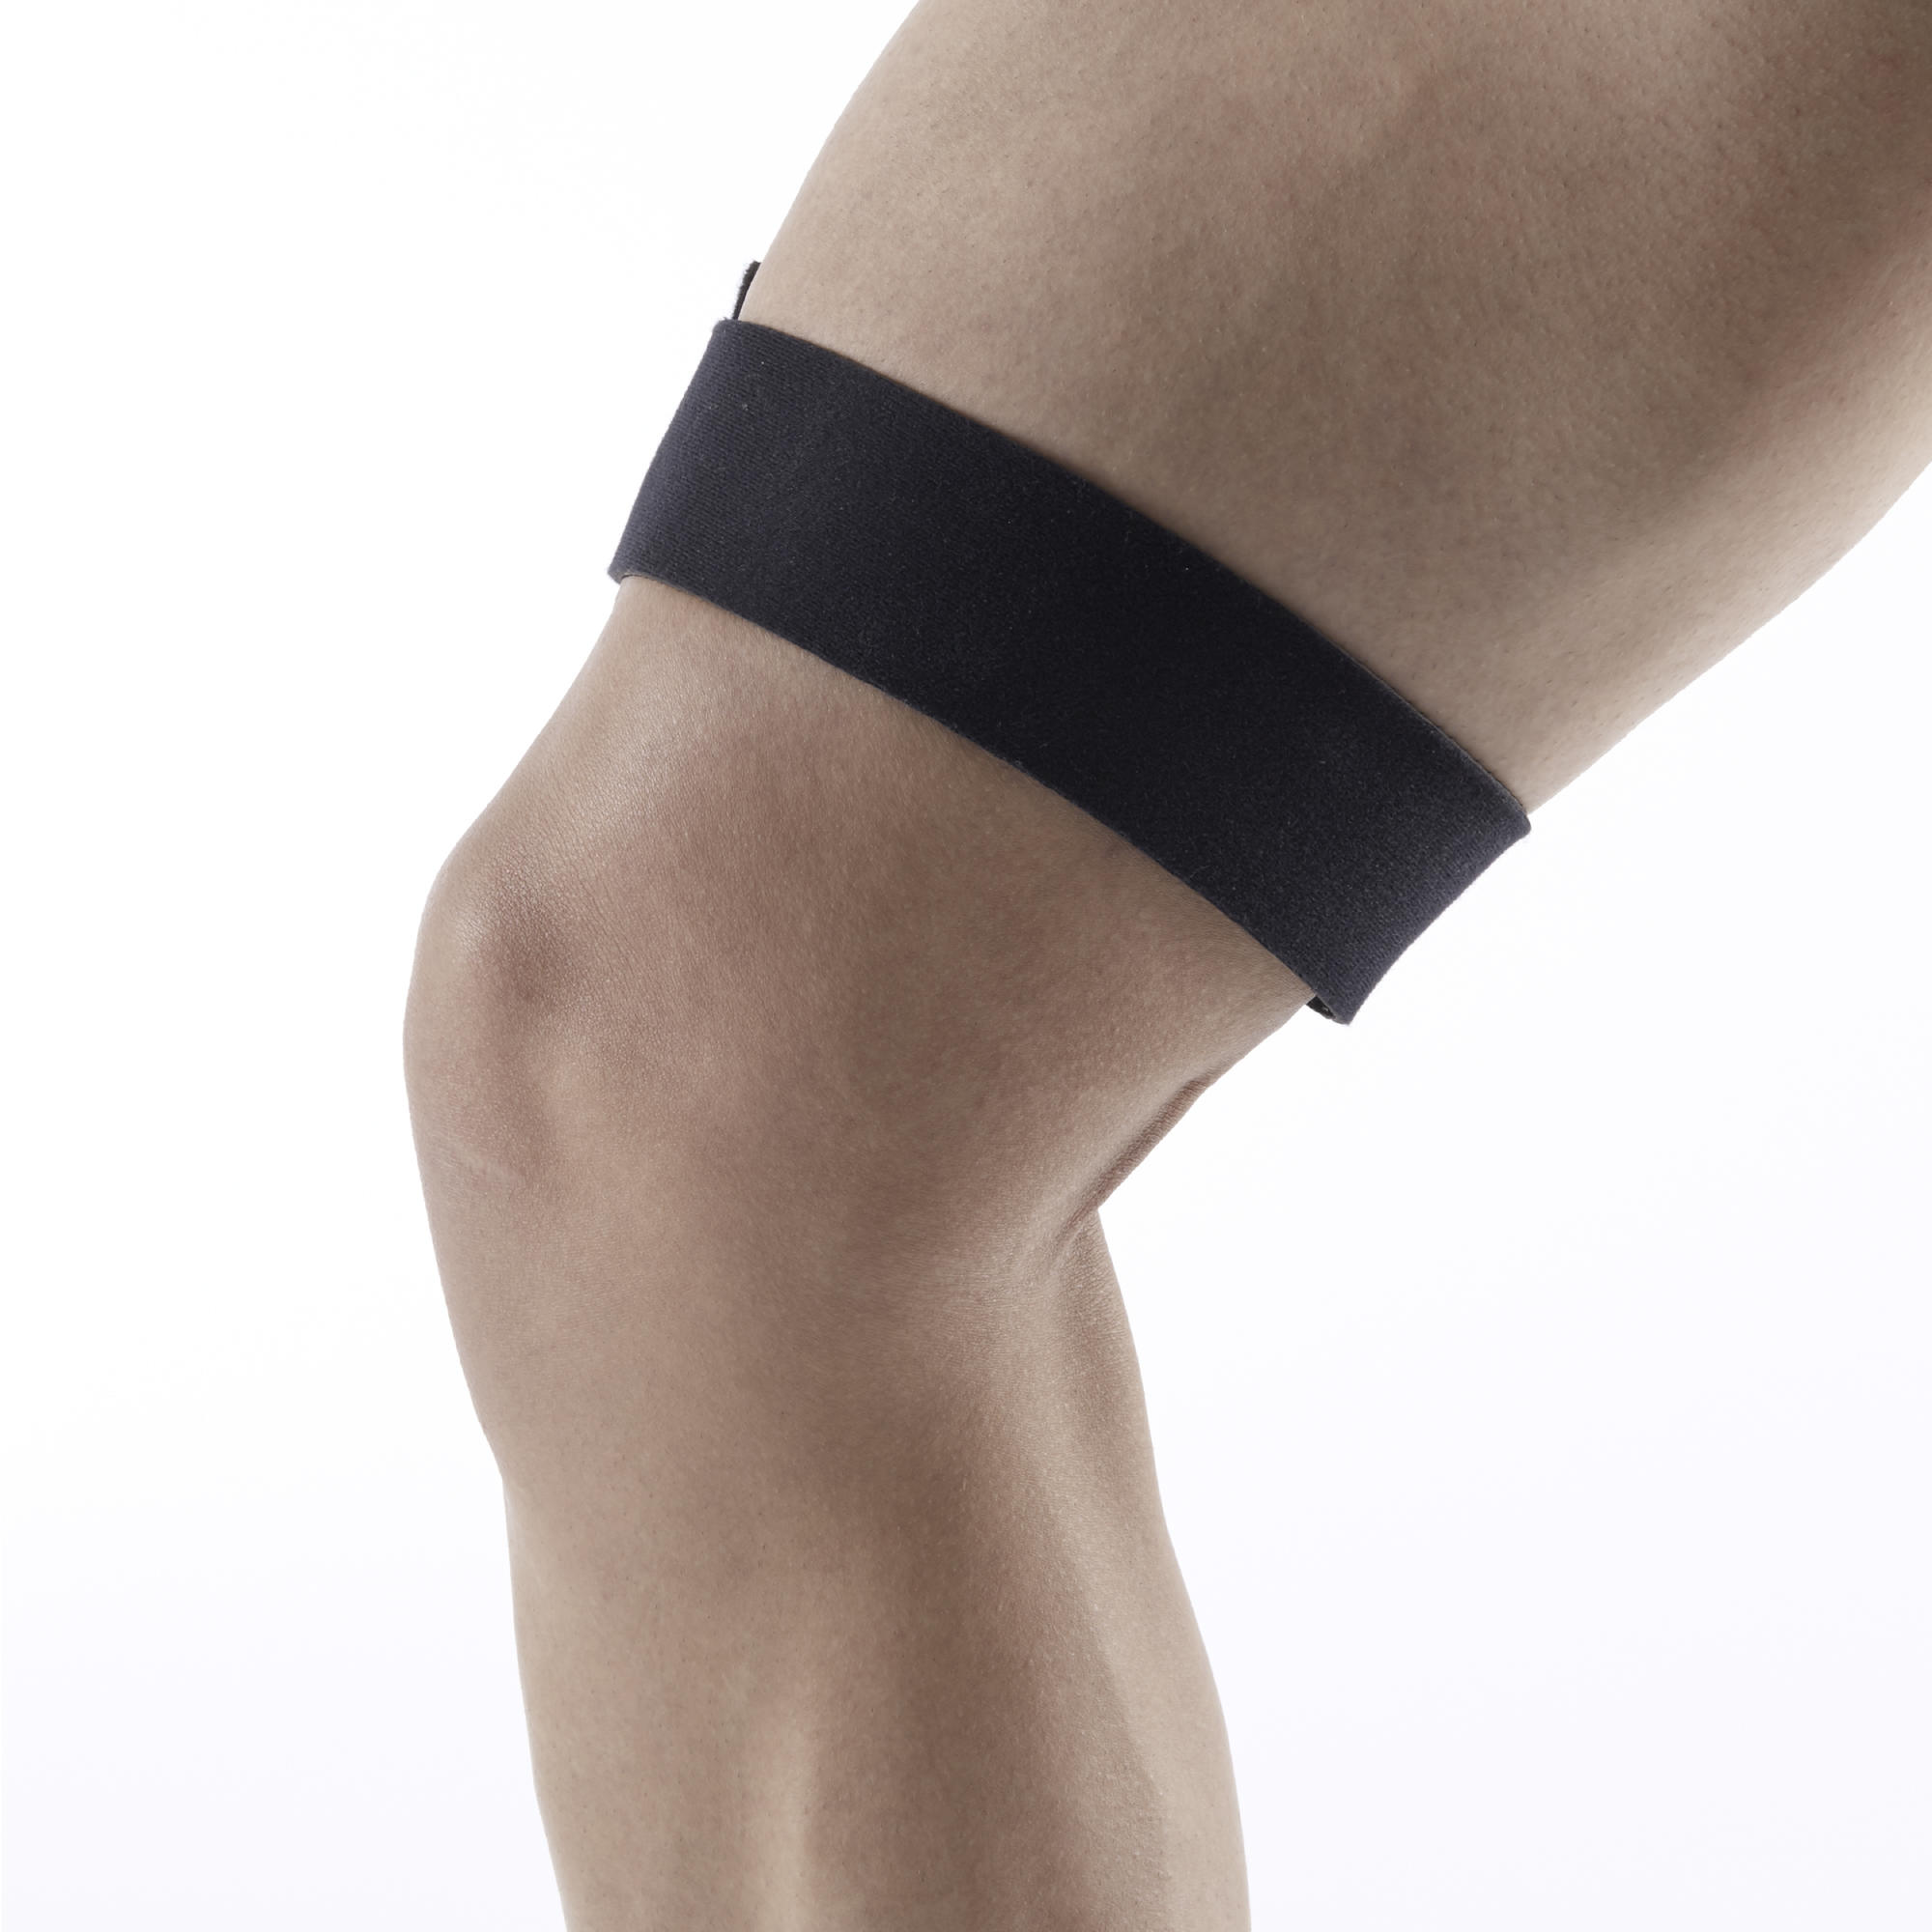 ITB Men's/Women's Left/Right Supportive Knee Strap - Black